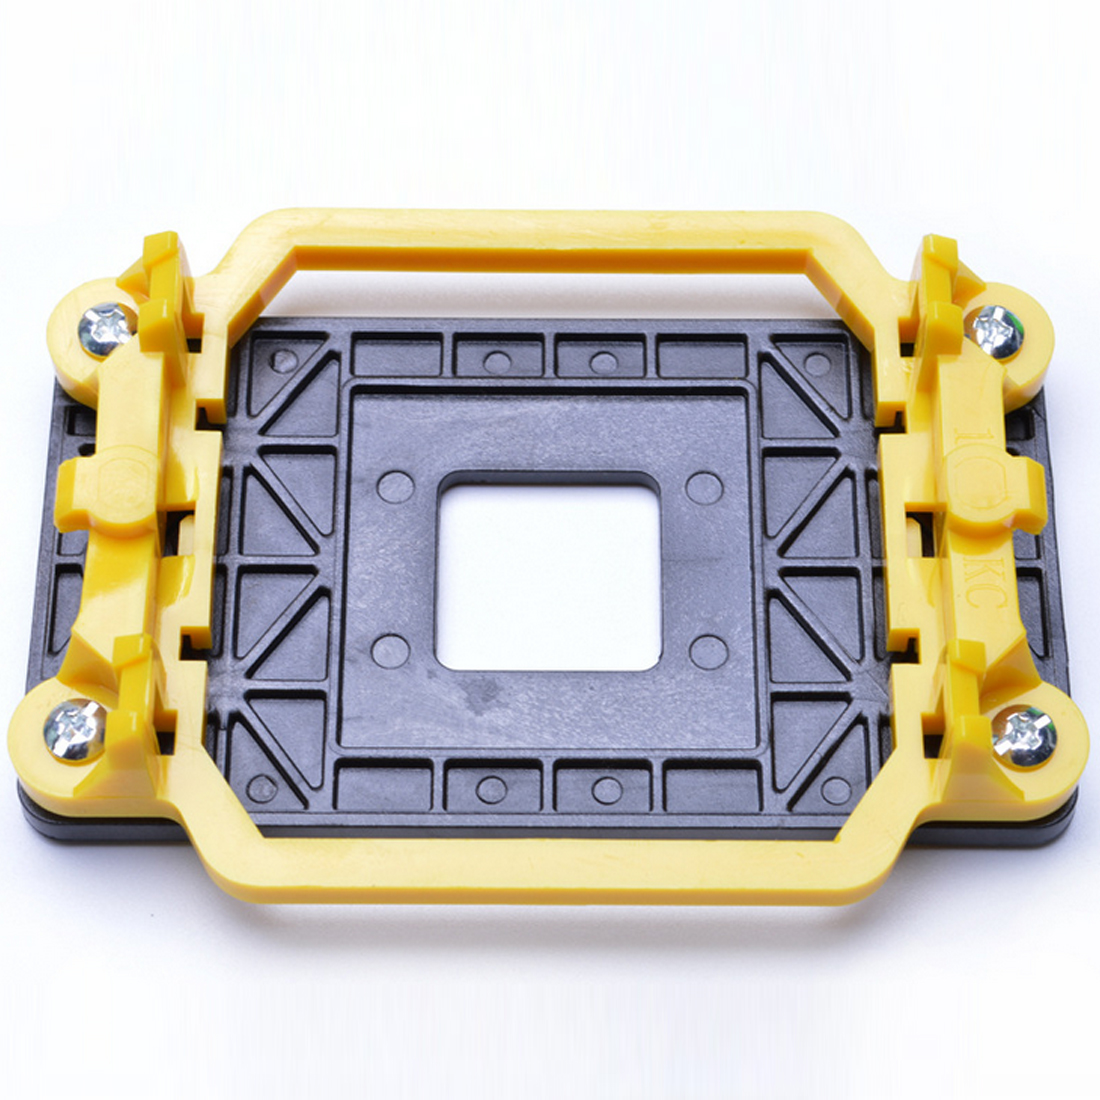 Etmakit Top Quality CPU Cooler Bracket Motherboard for AMD AM2/AM2+/AM3/AM3+/FM1/FM2/FM2+/940/939 Install the fastening image